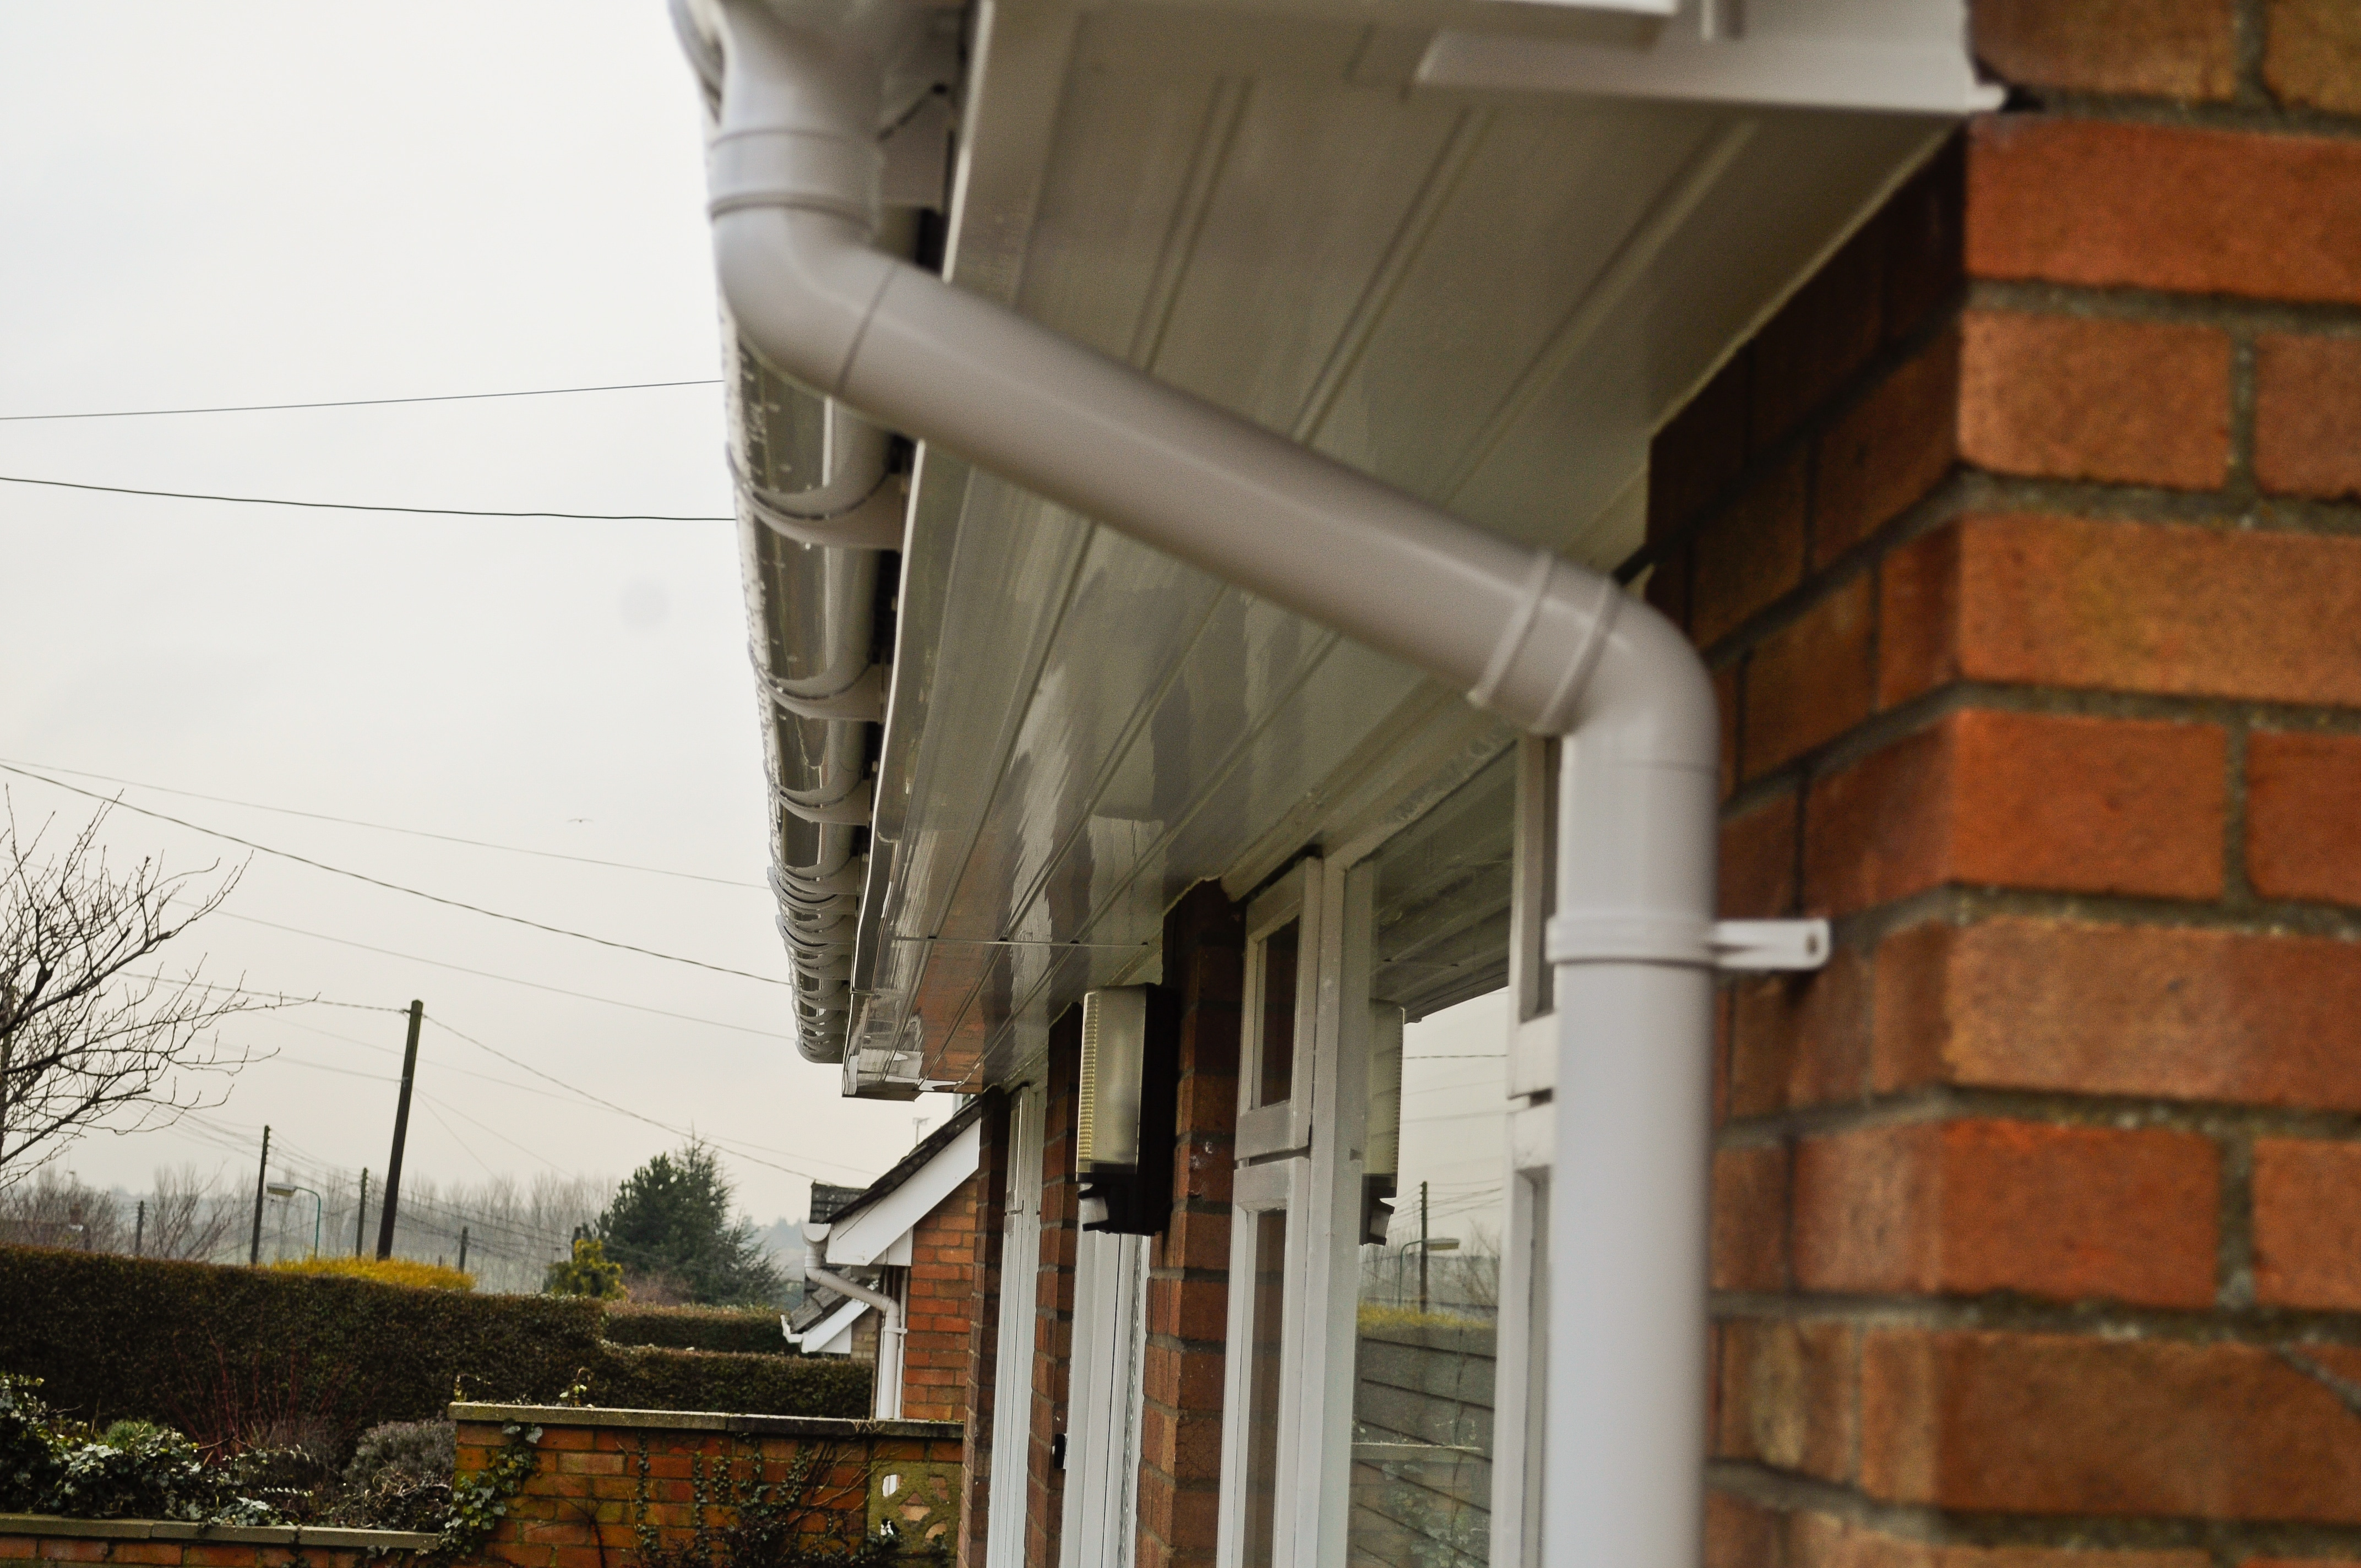 White T&G style soffits